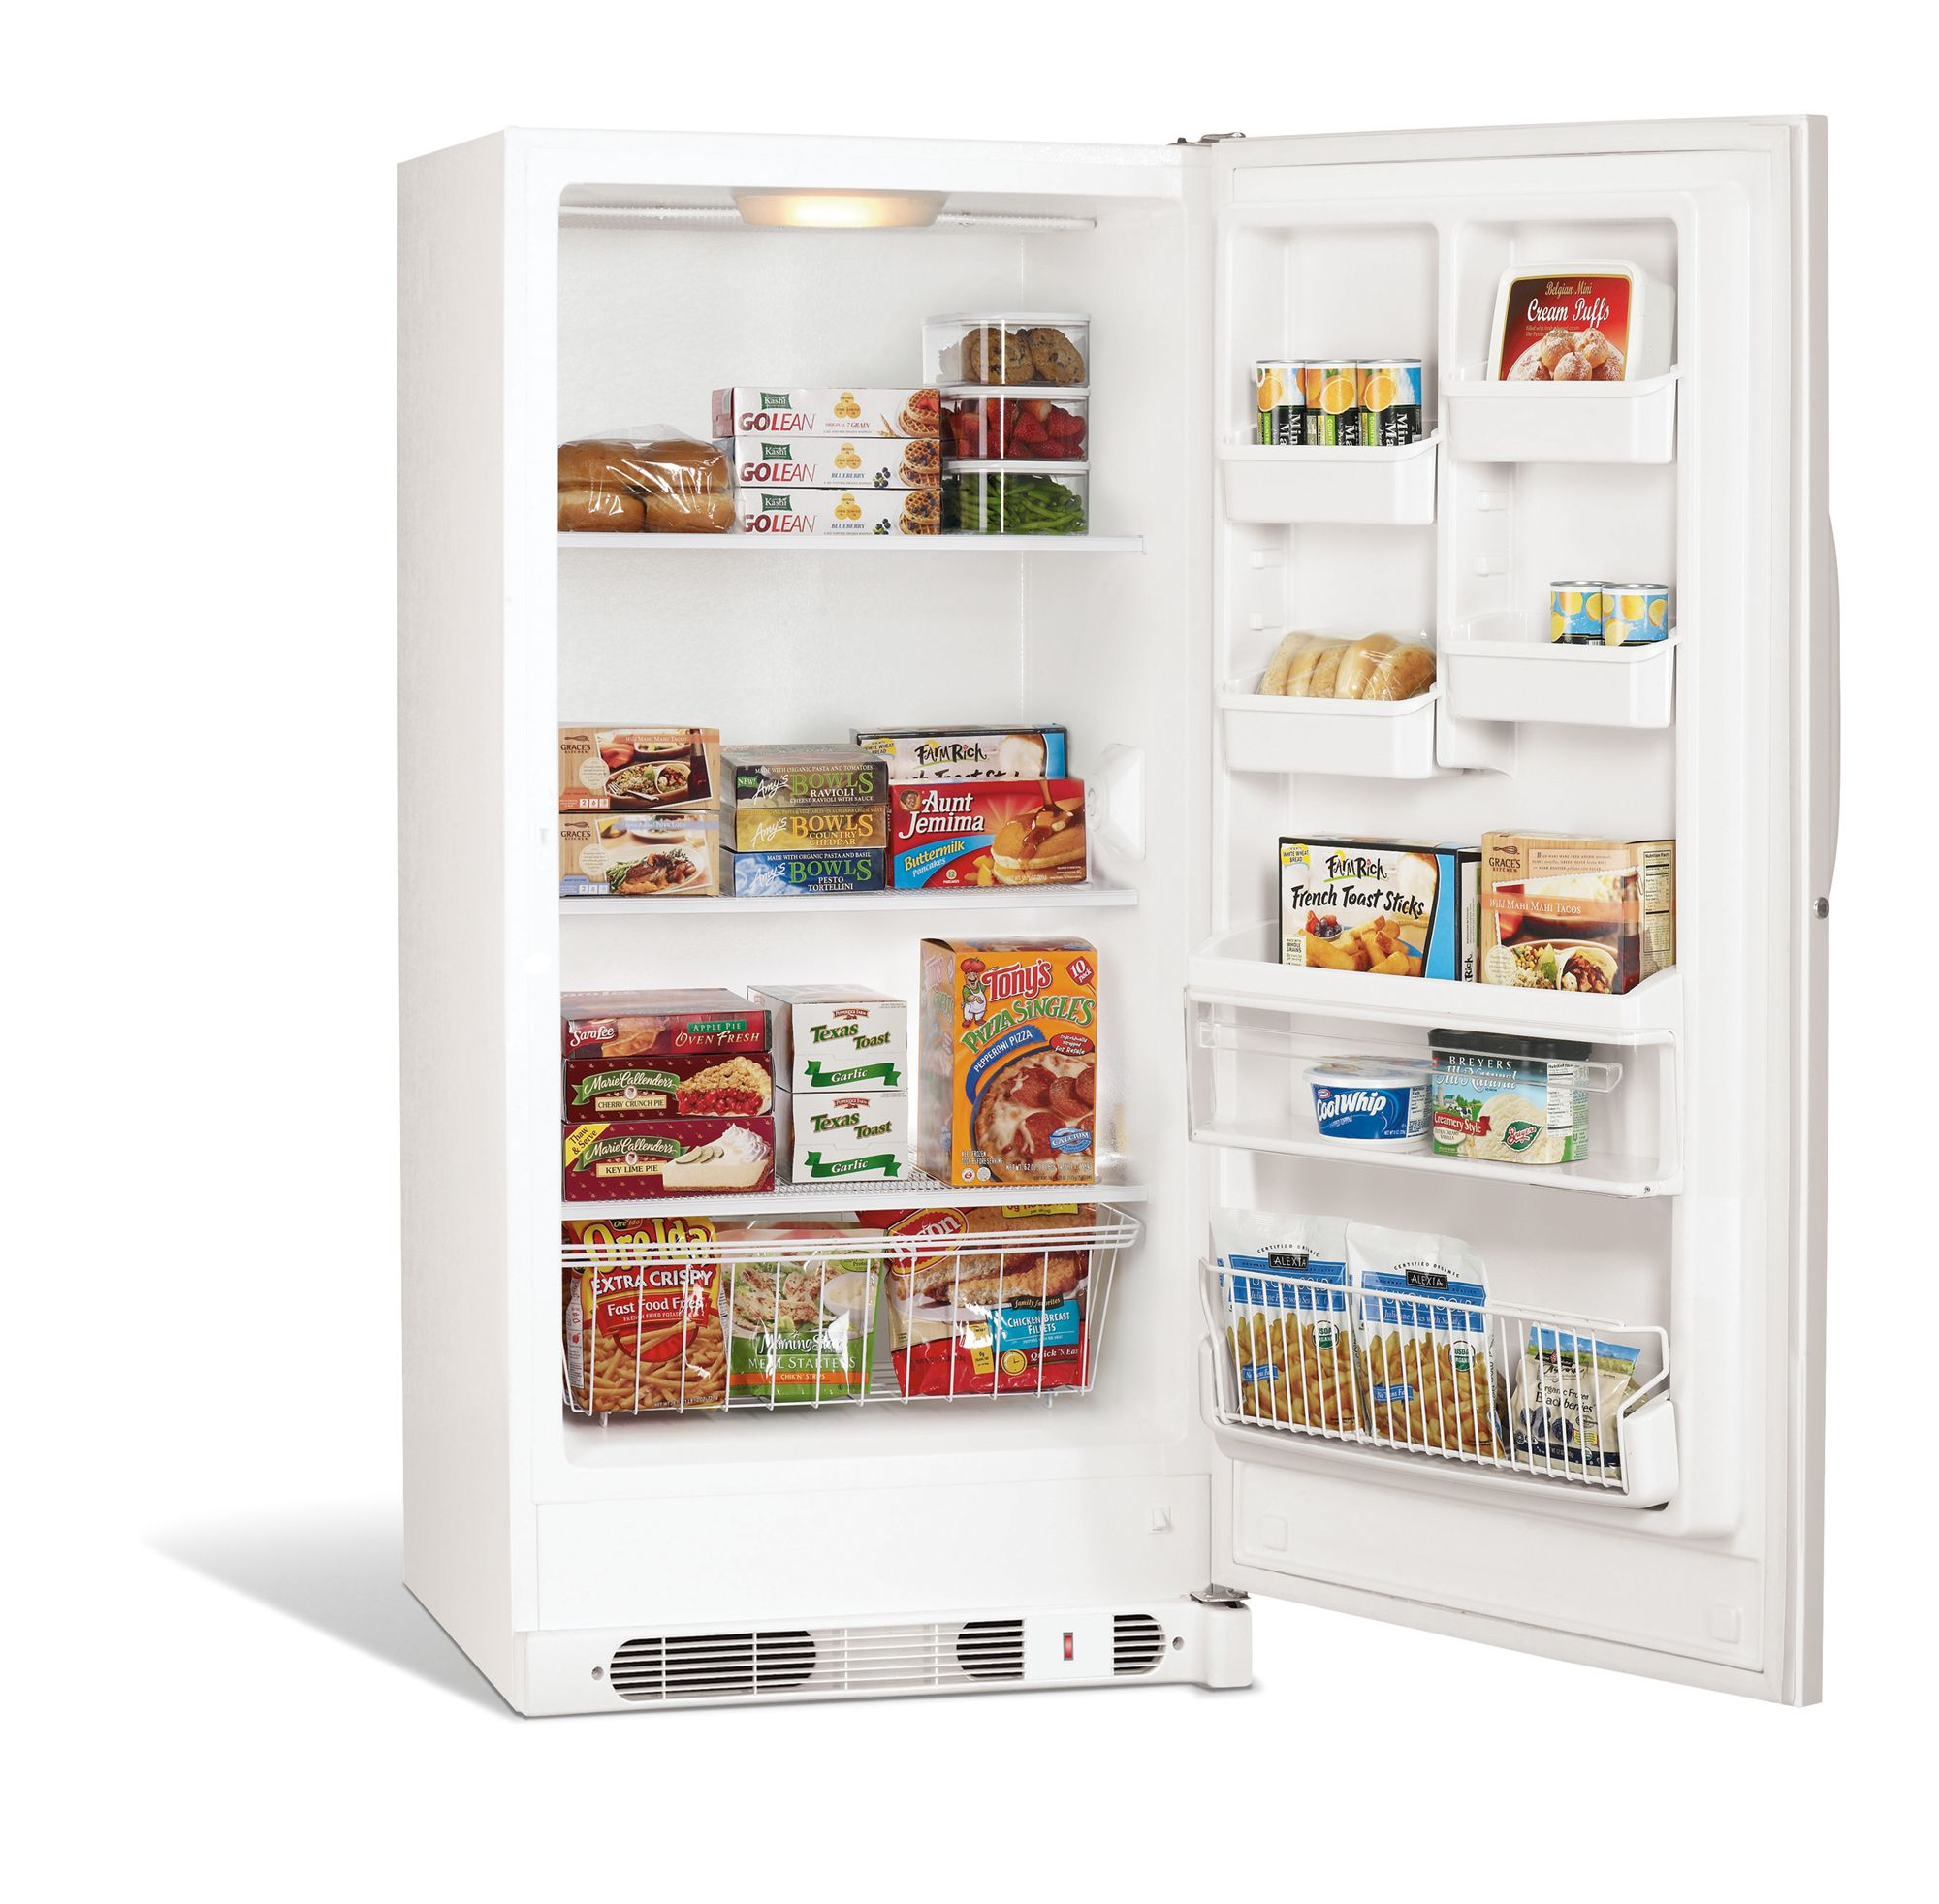 Frigidaire 16.7 cu. ft. Upright Freezer - White